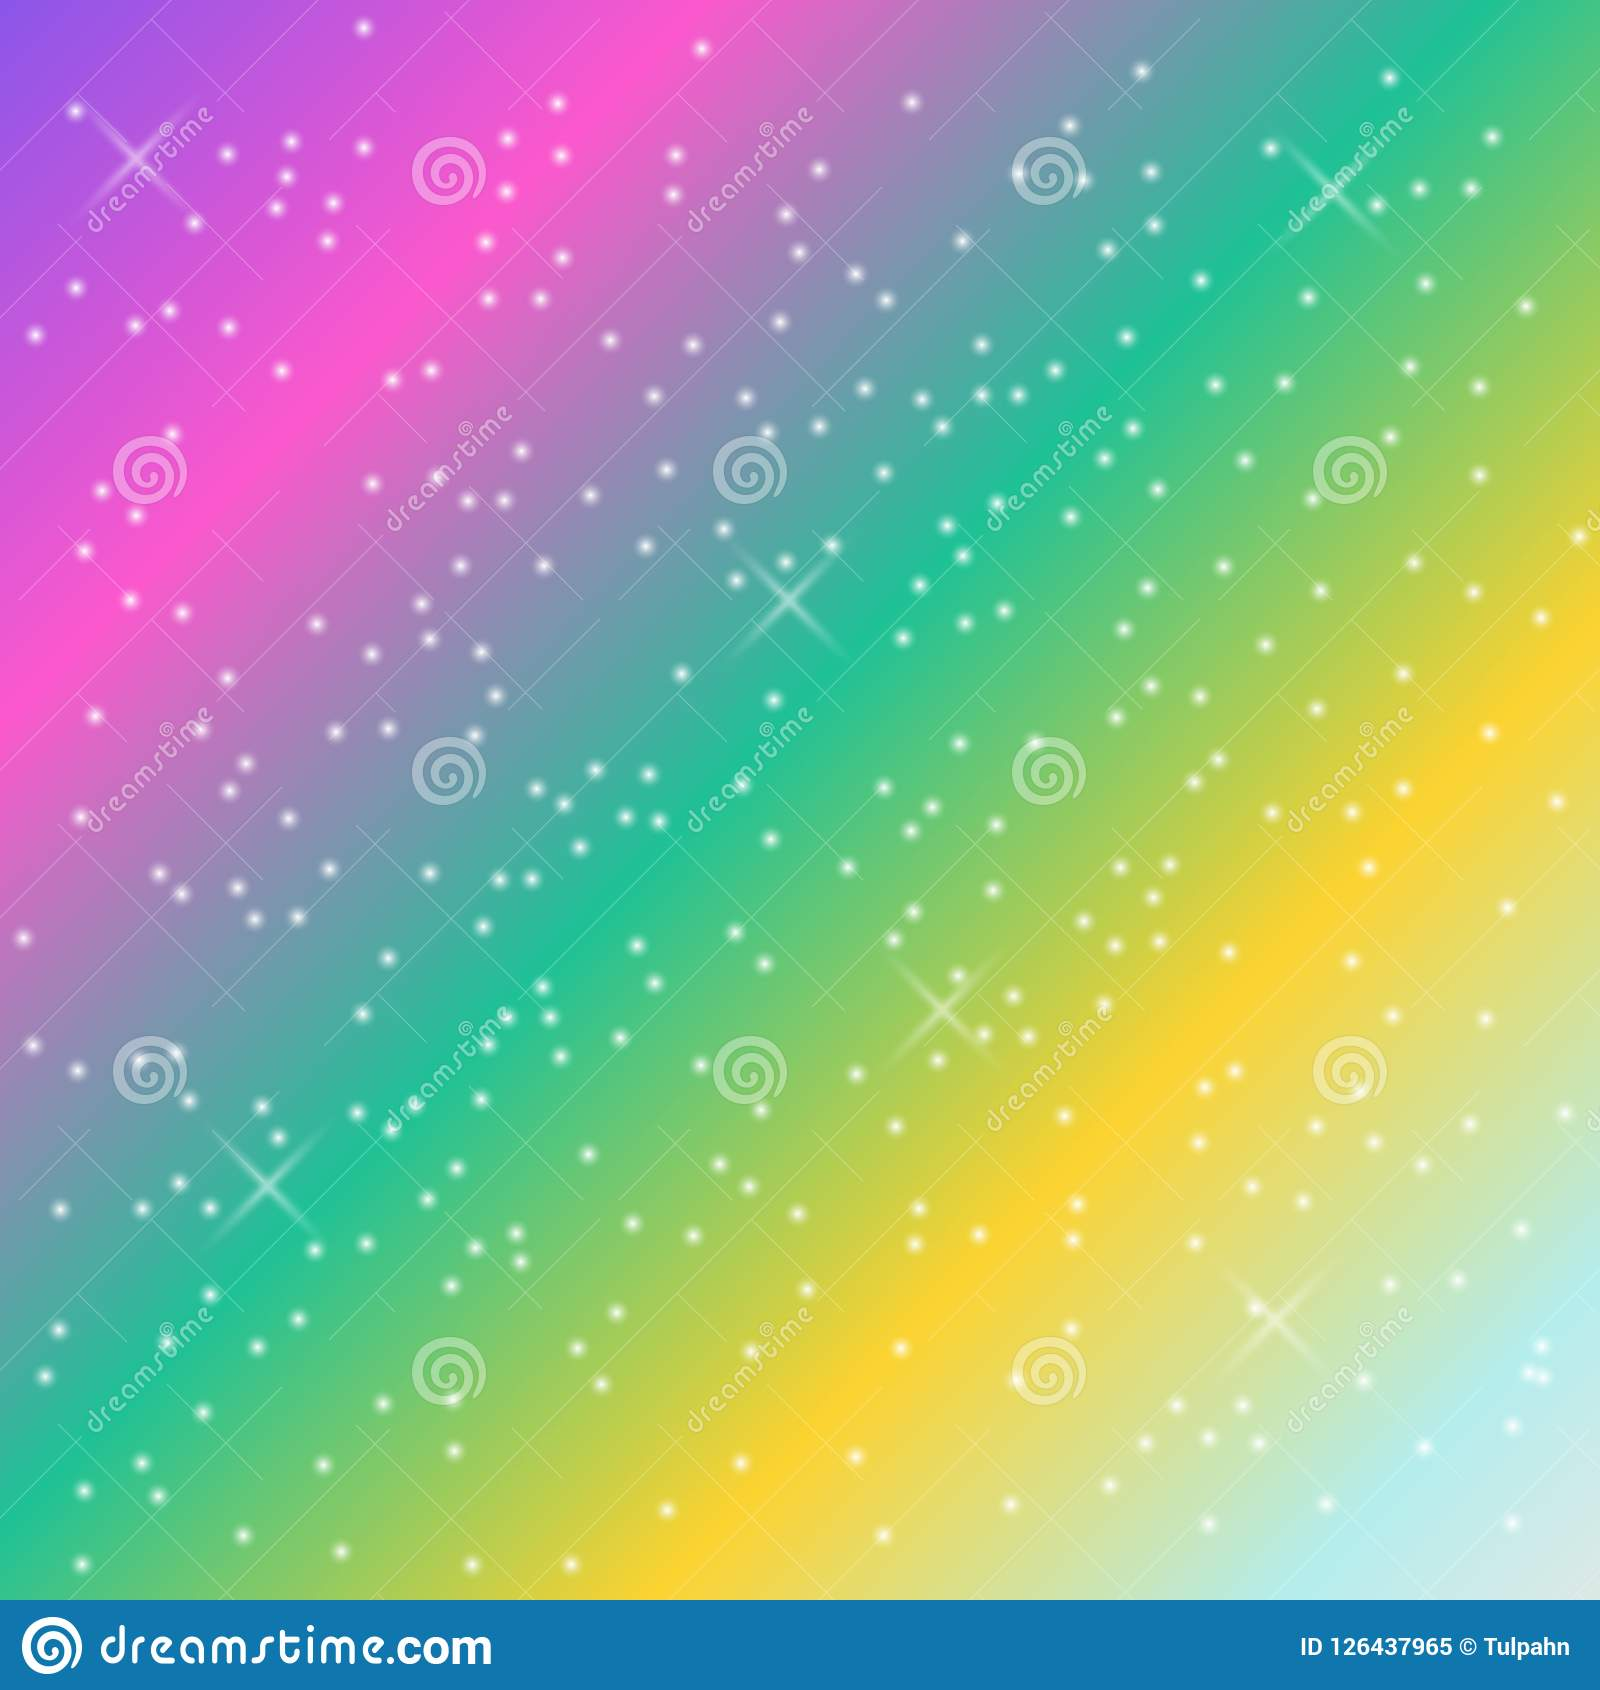 Wallpaper Falling Stars Rainbow Pastel Background Stock Illustration Illustration